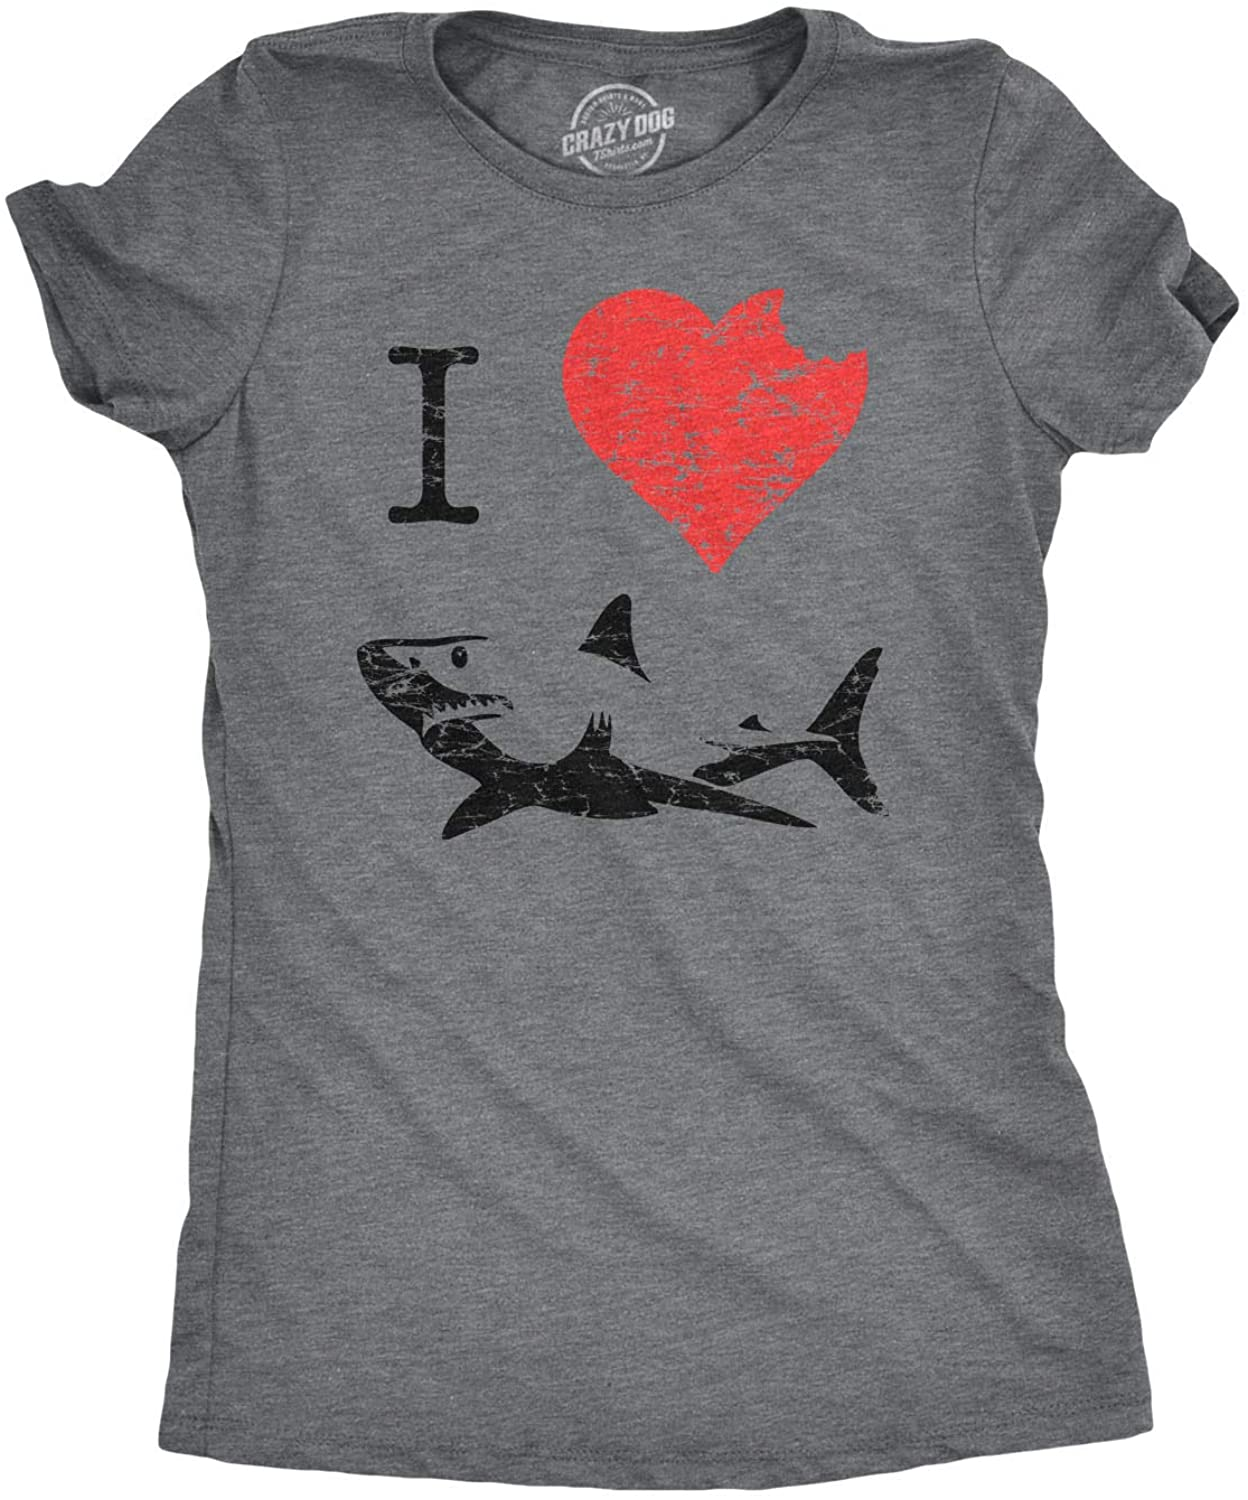 Womens I Love Sharks T Shirt Shark Bite Shirt Vintage Graphic Tee for Ladies